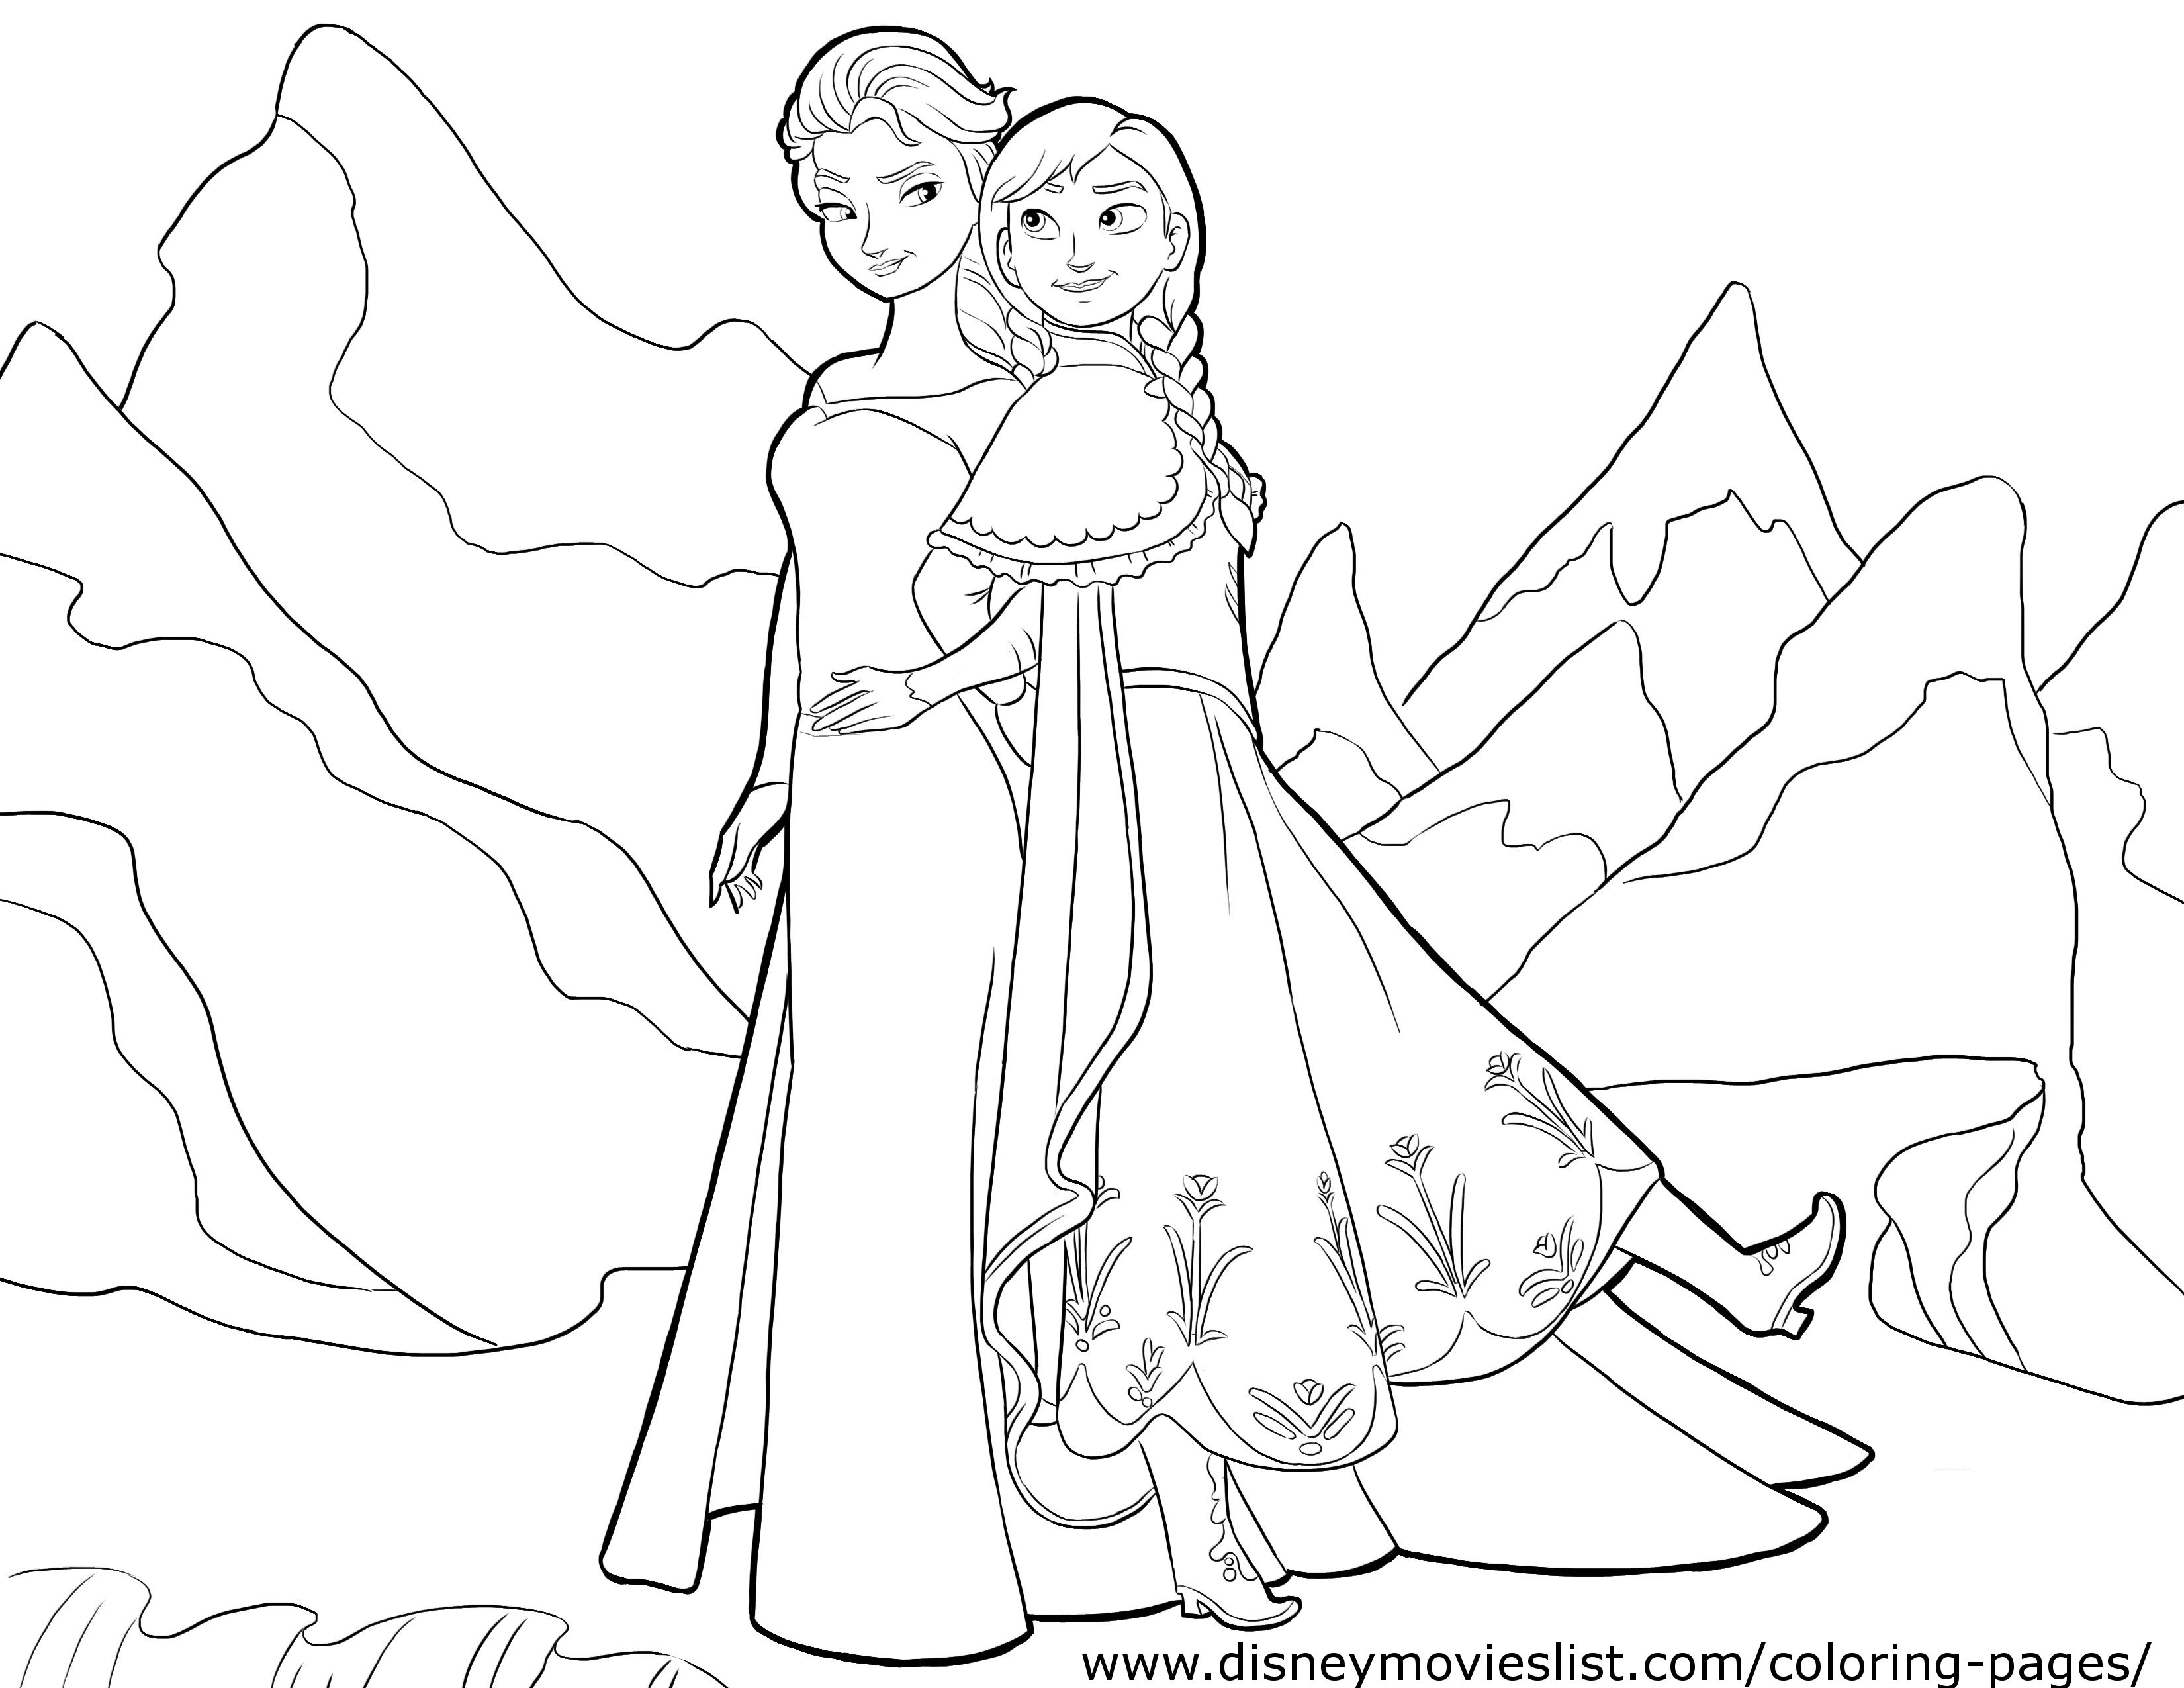 FROZEN Elsa & Anna Coloring Page - Lovebugs and Postcards